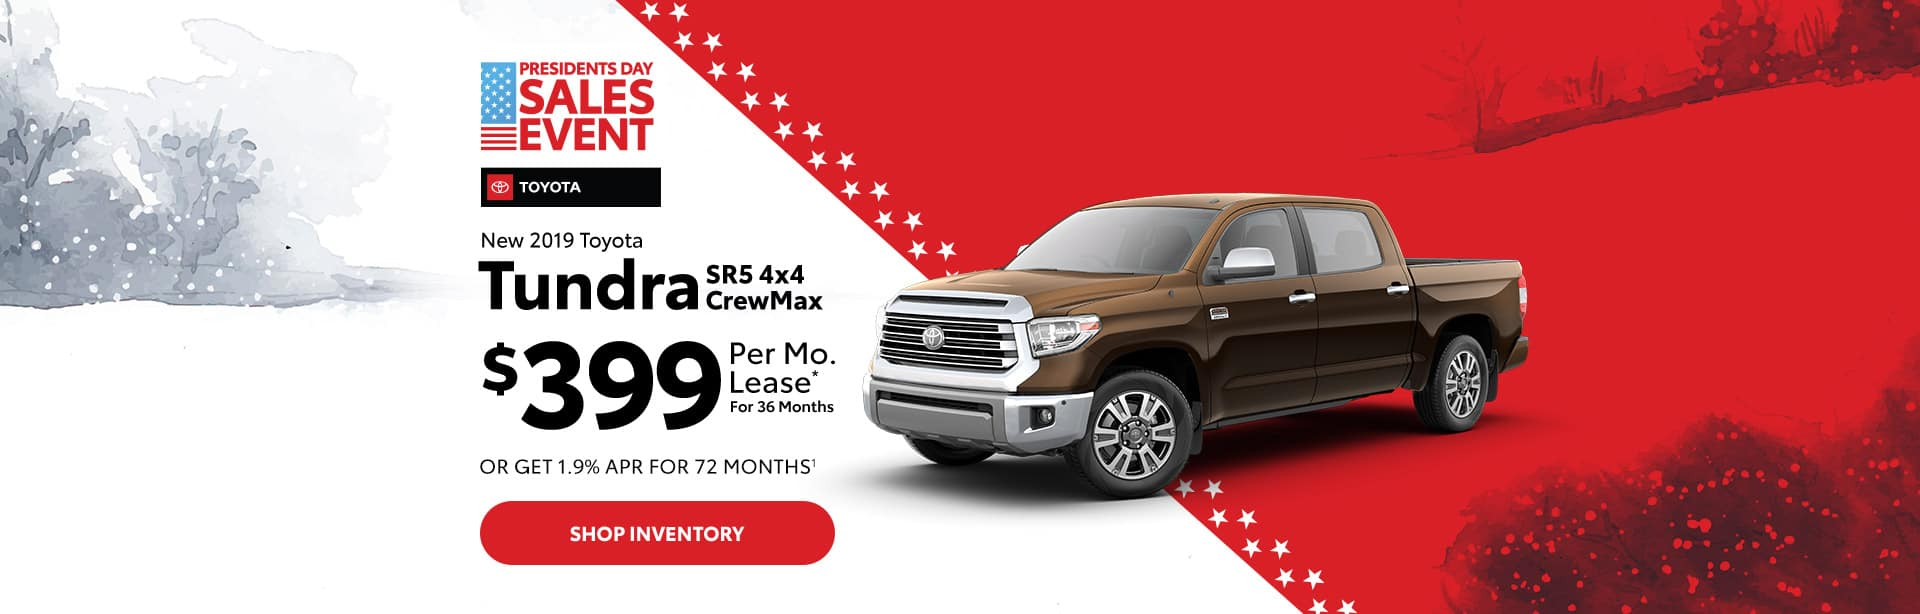 New Toyota Tundra Lease in Columbus, Indiana.